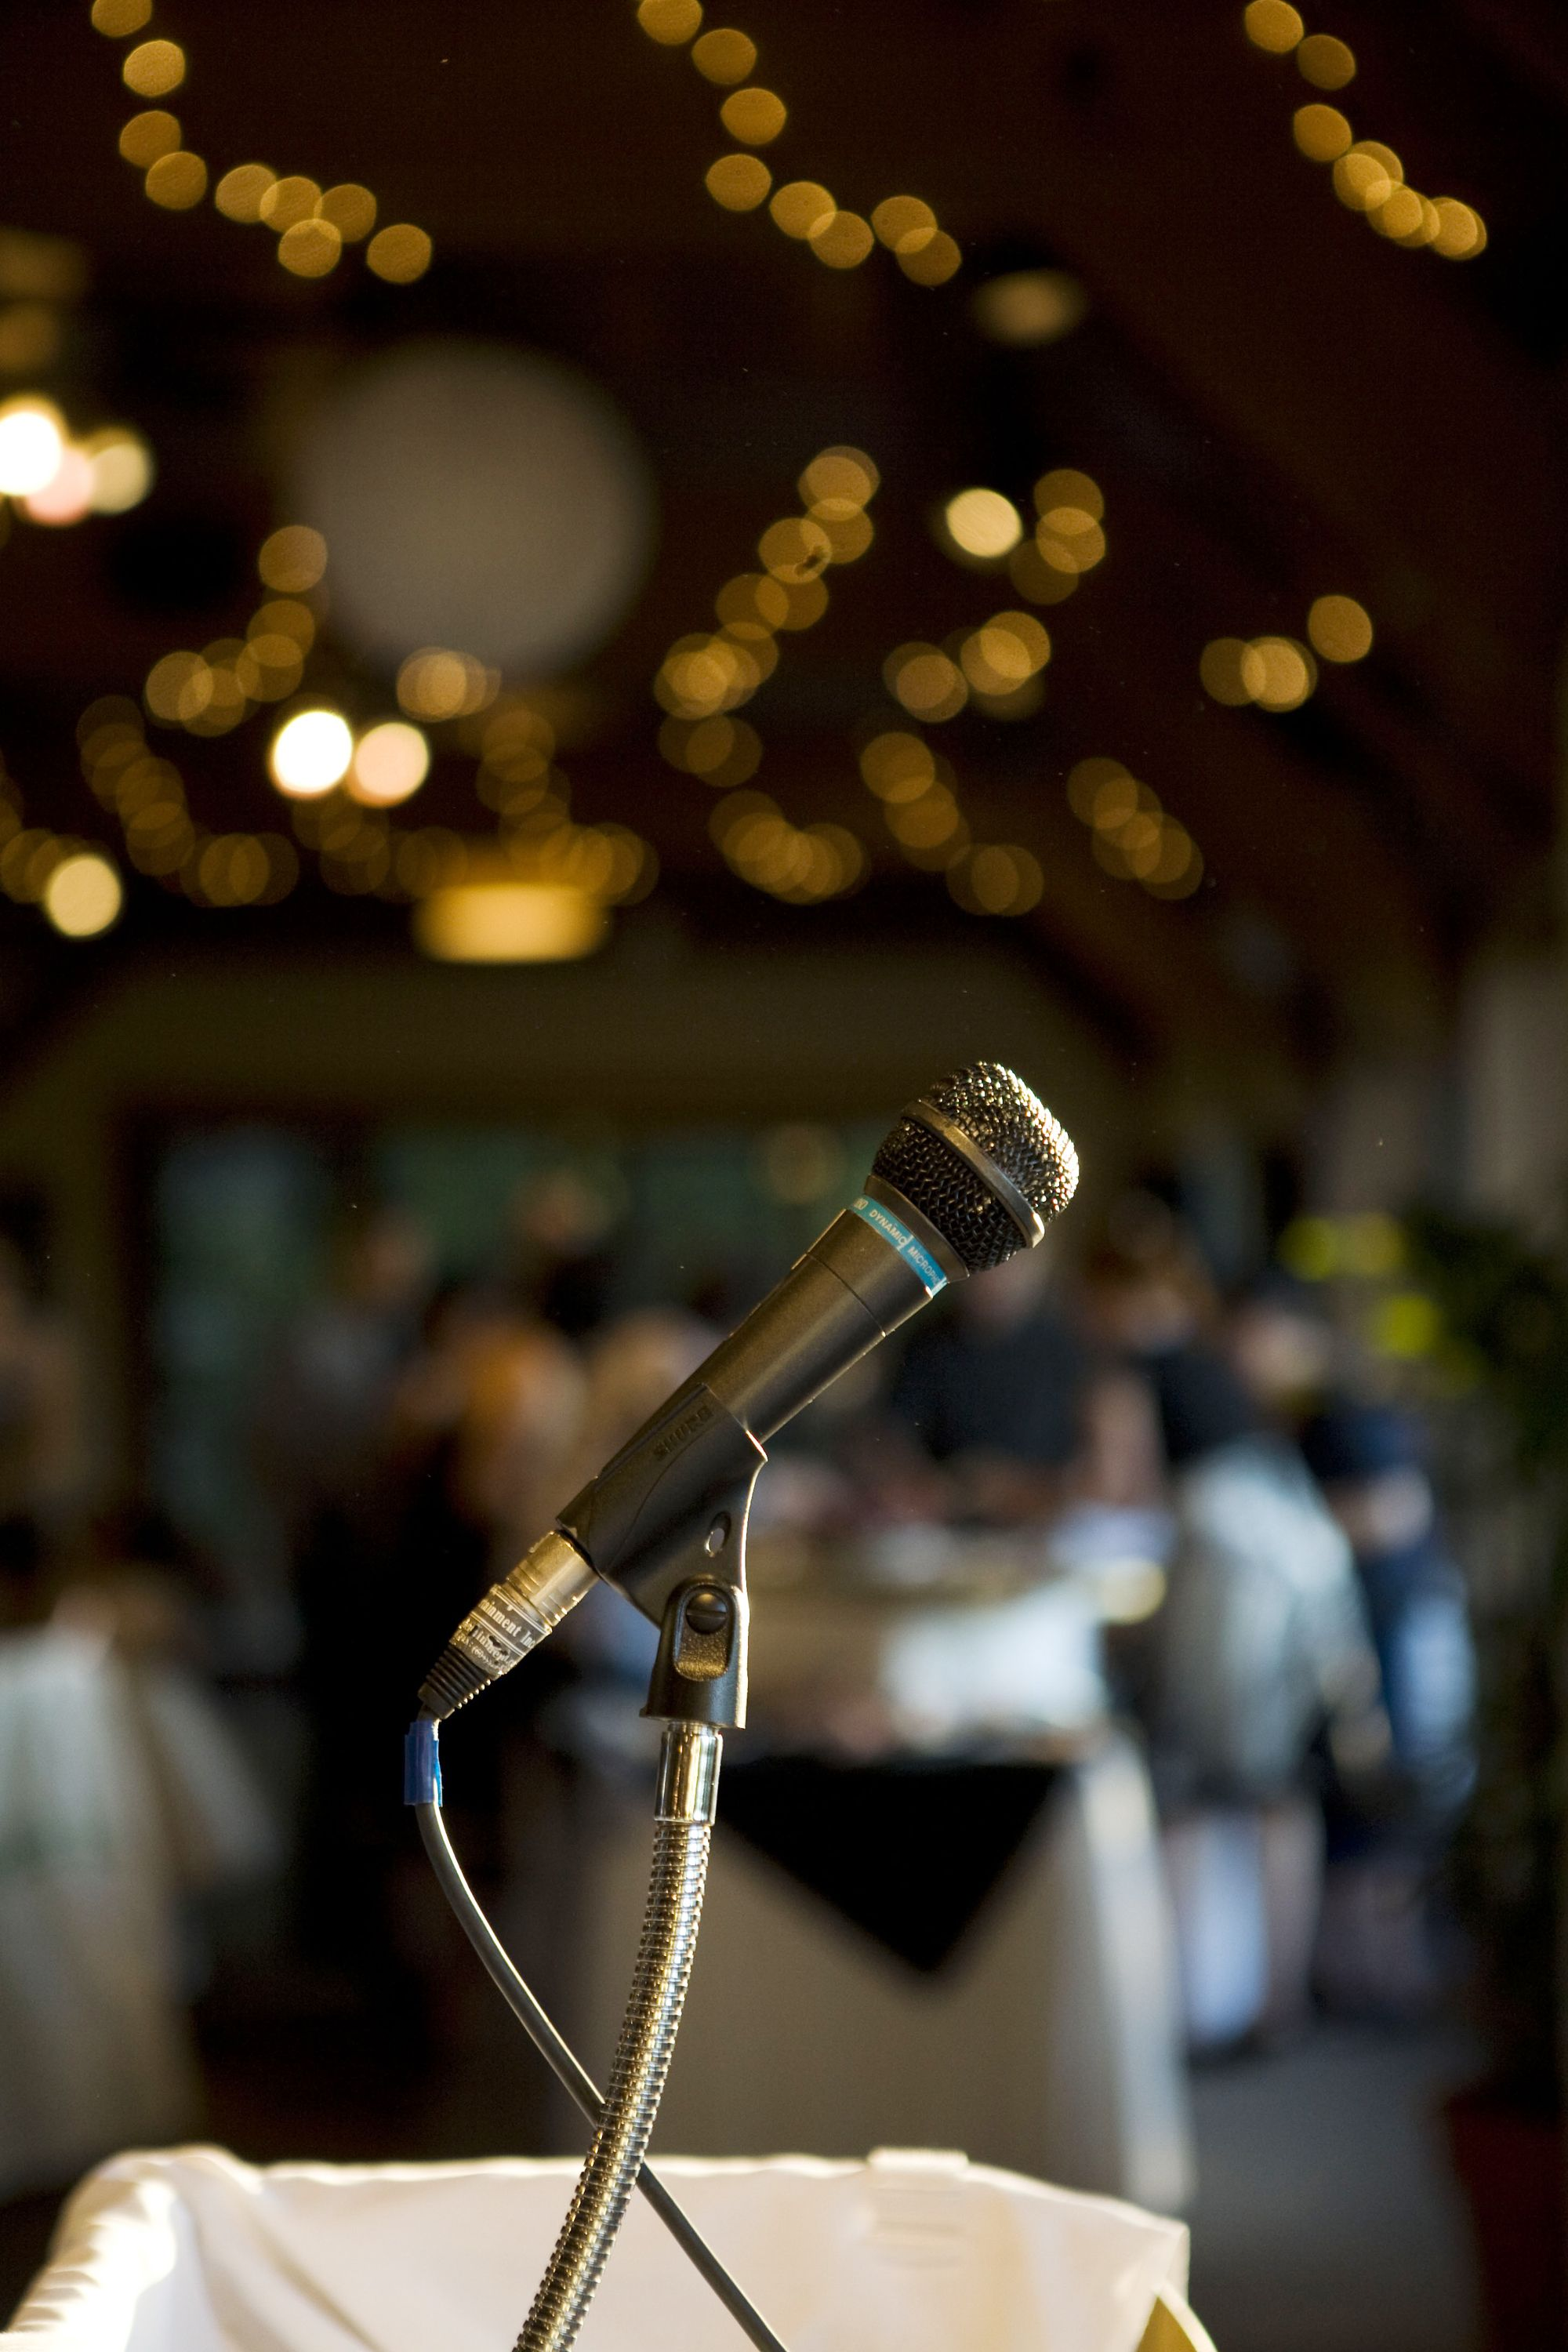 Wedding Speeches? Nervous? Dont be. The answers are here. http://fixweddingjitters.com/product/wedding-speeches-best-man-groomsman